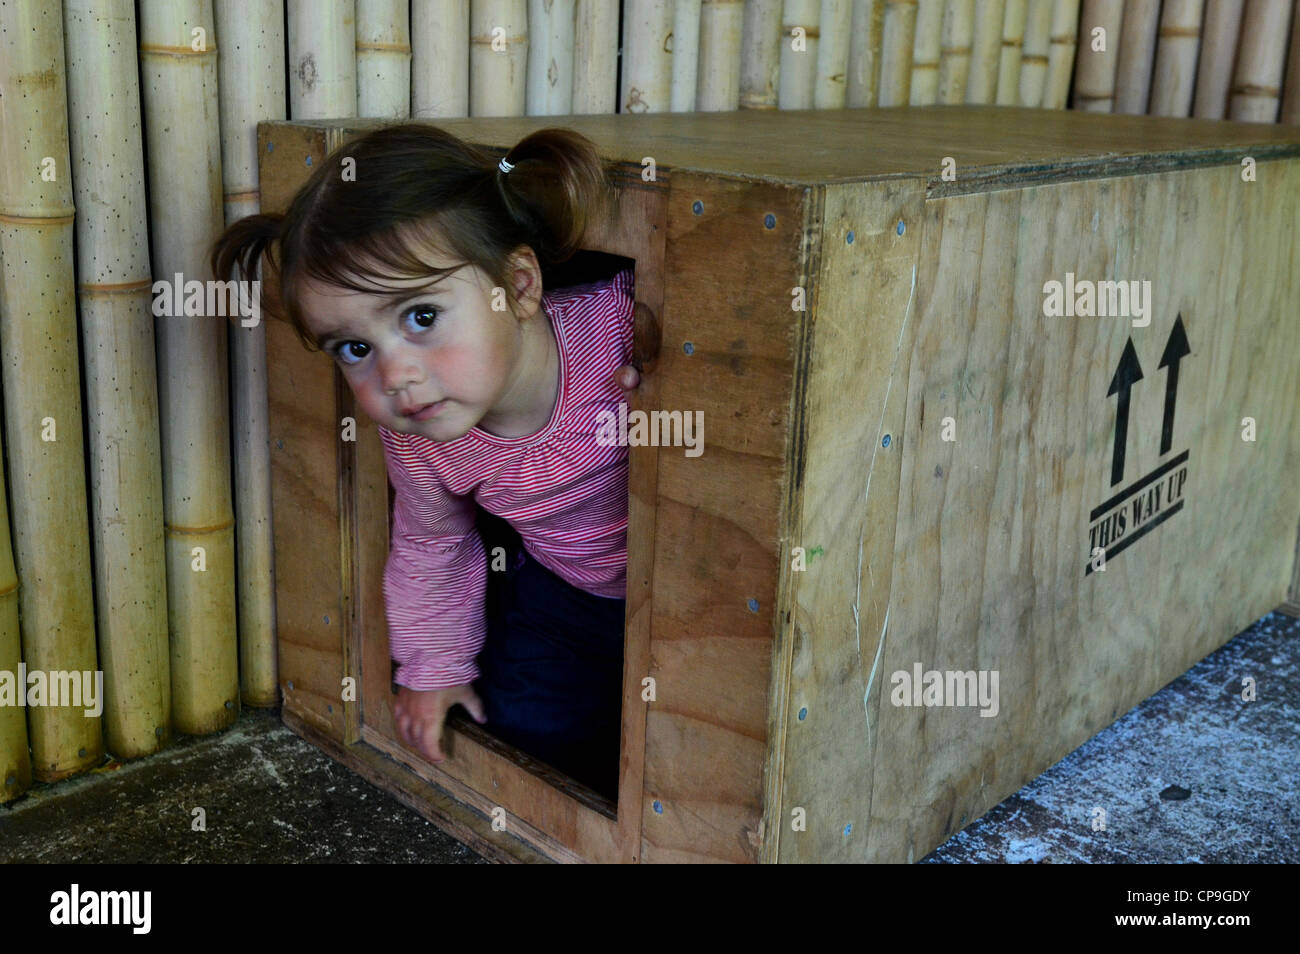 A little girl plays hide and seek game. - Stock Image